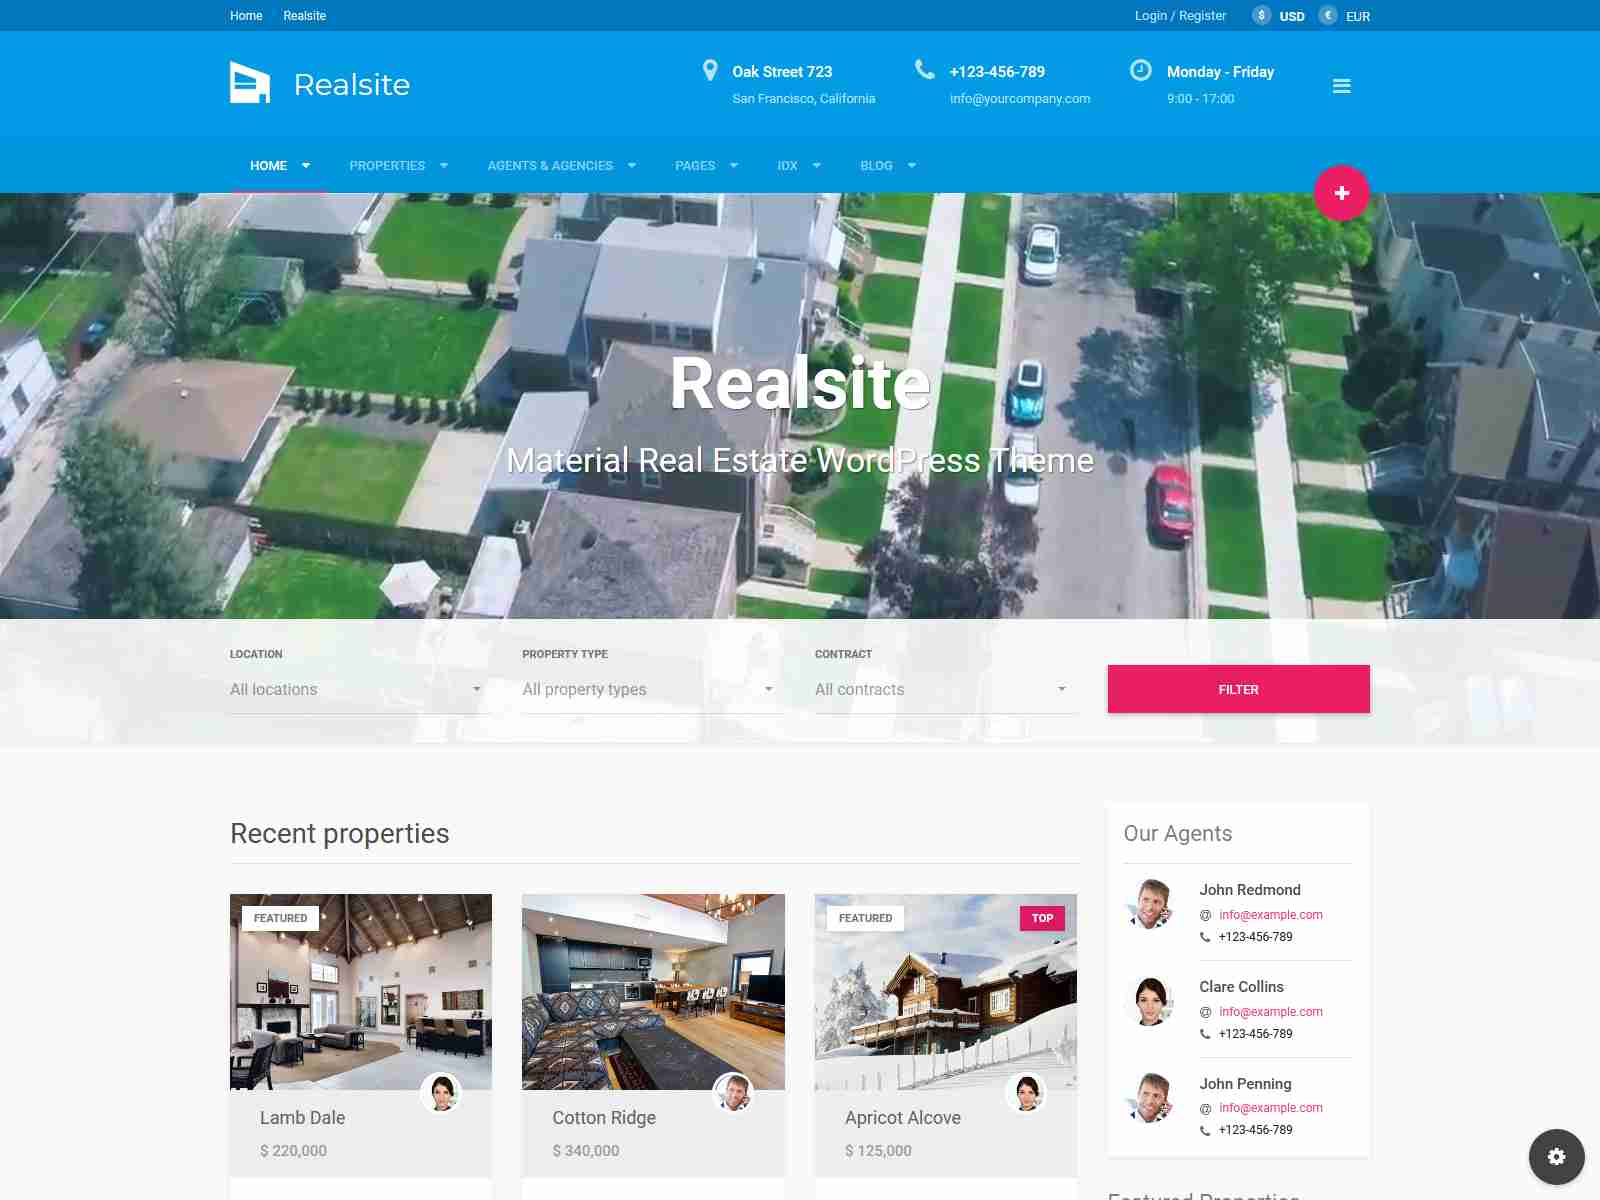 Realsite - Material Real Estate WordPress Theme real estate wordpress themes